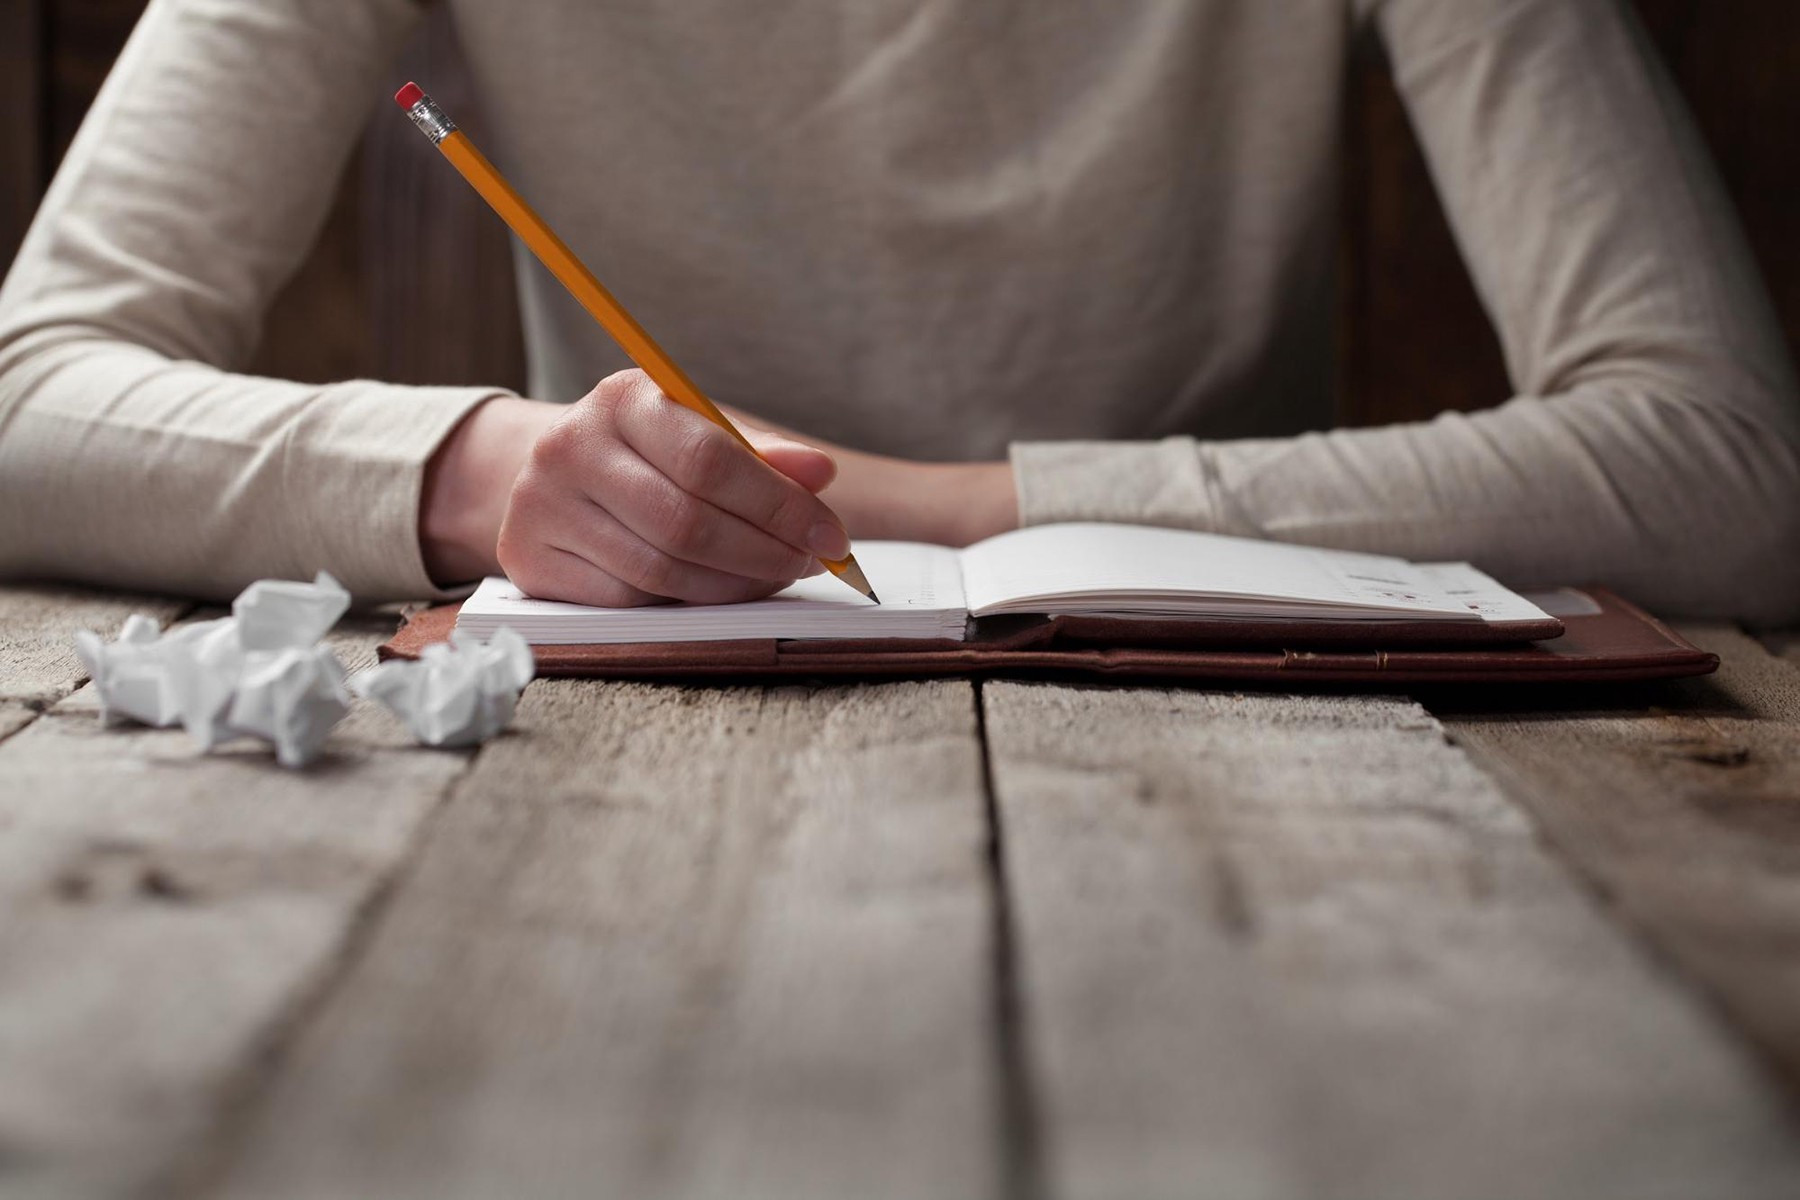 Writing with a pencil in a leather-bound notebook with crumpled drafts on a wooden table.